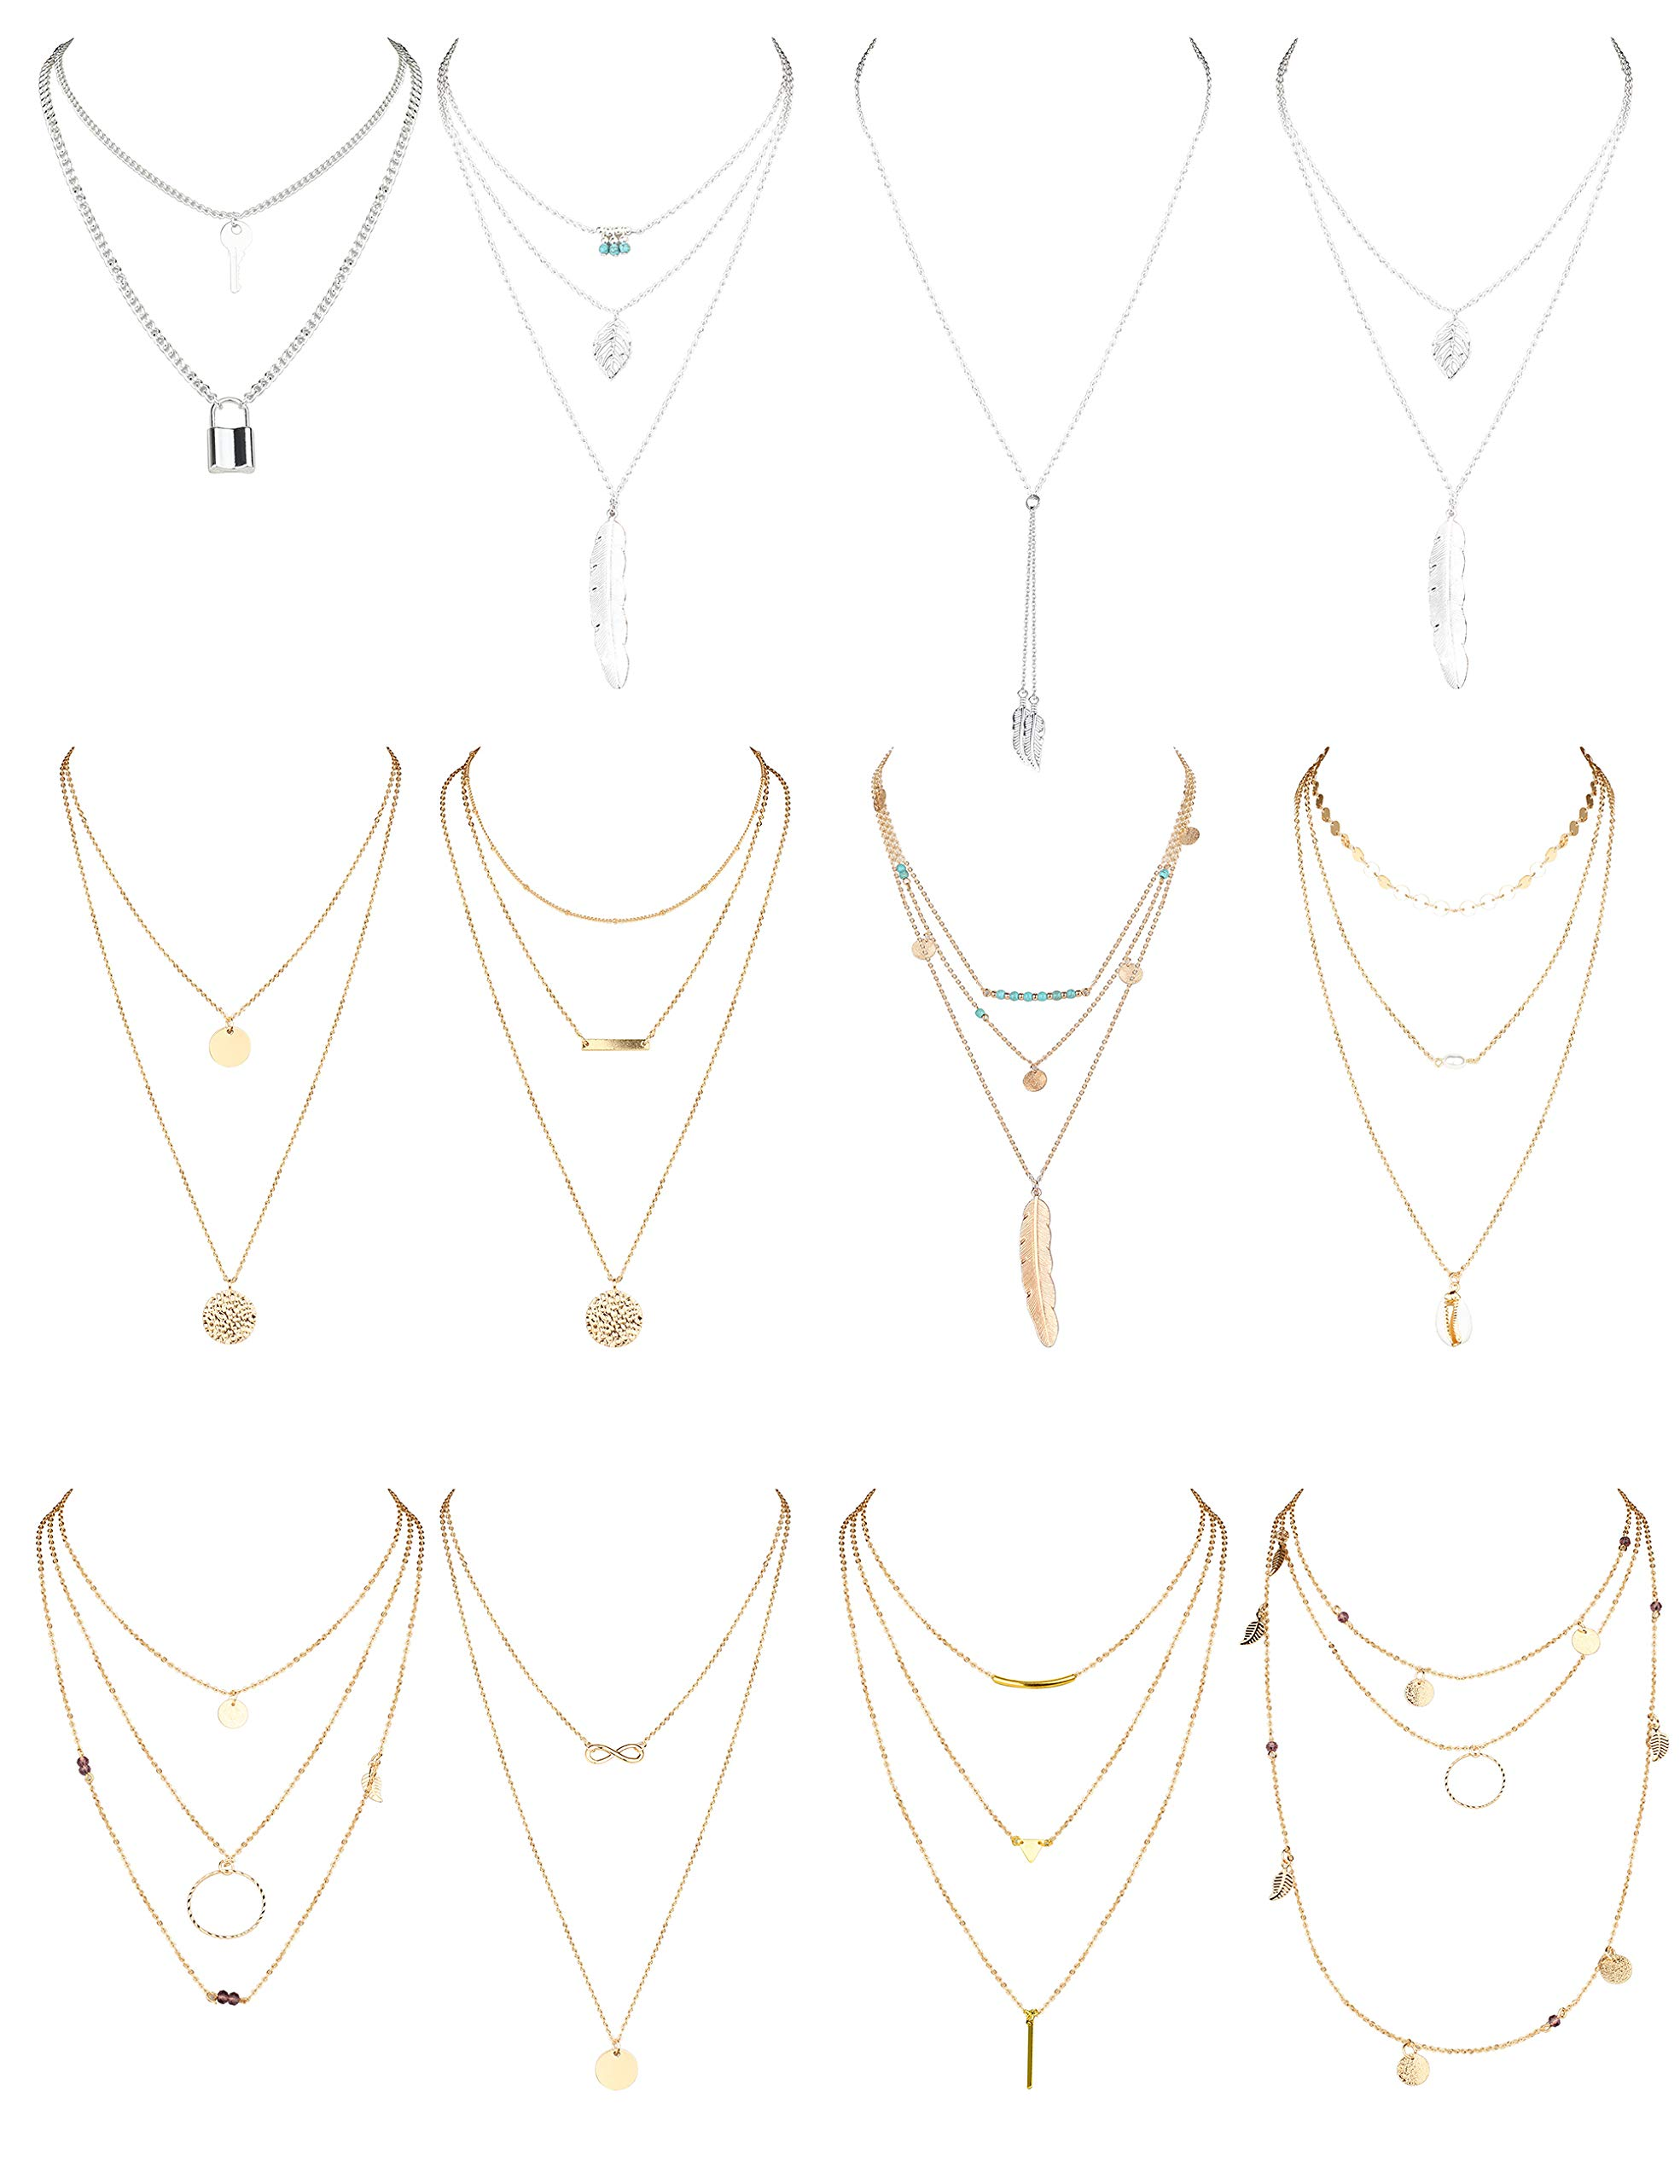 FIBO STEEL 12 PCS Layered Necklace for Women Sexy Long Choker Chain Y Necklace Bar Feather Disc Pendent Necklace Sets Gold & Silver Tone